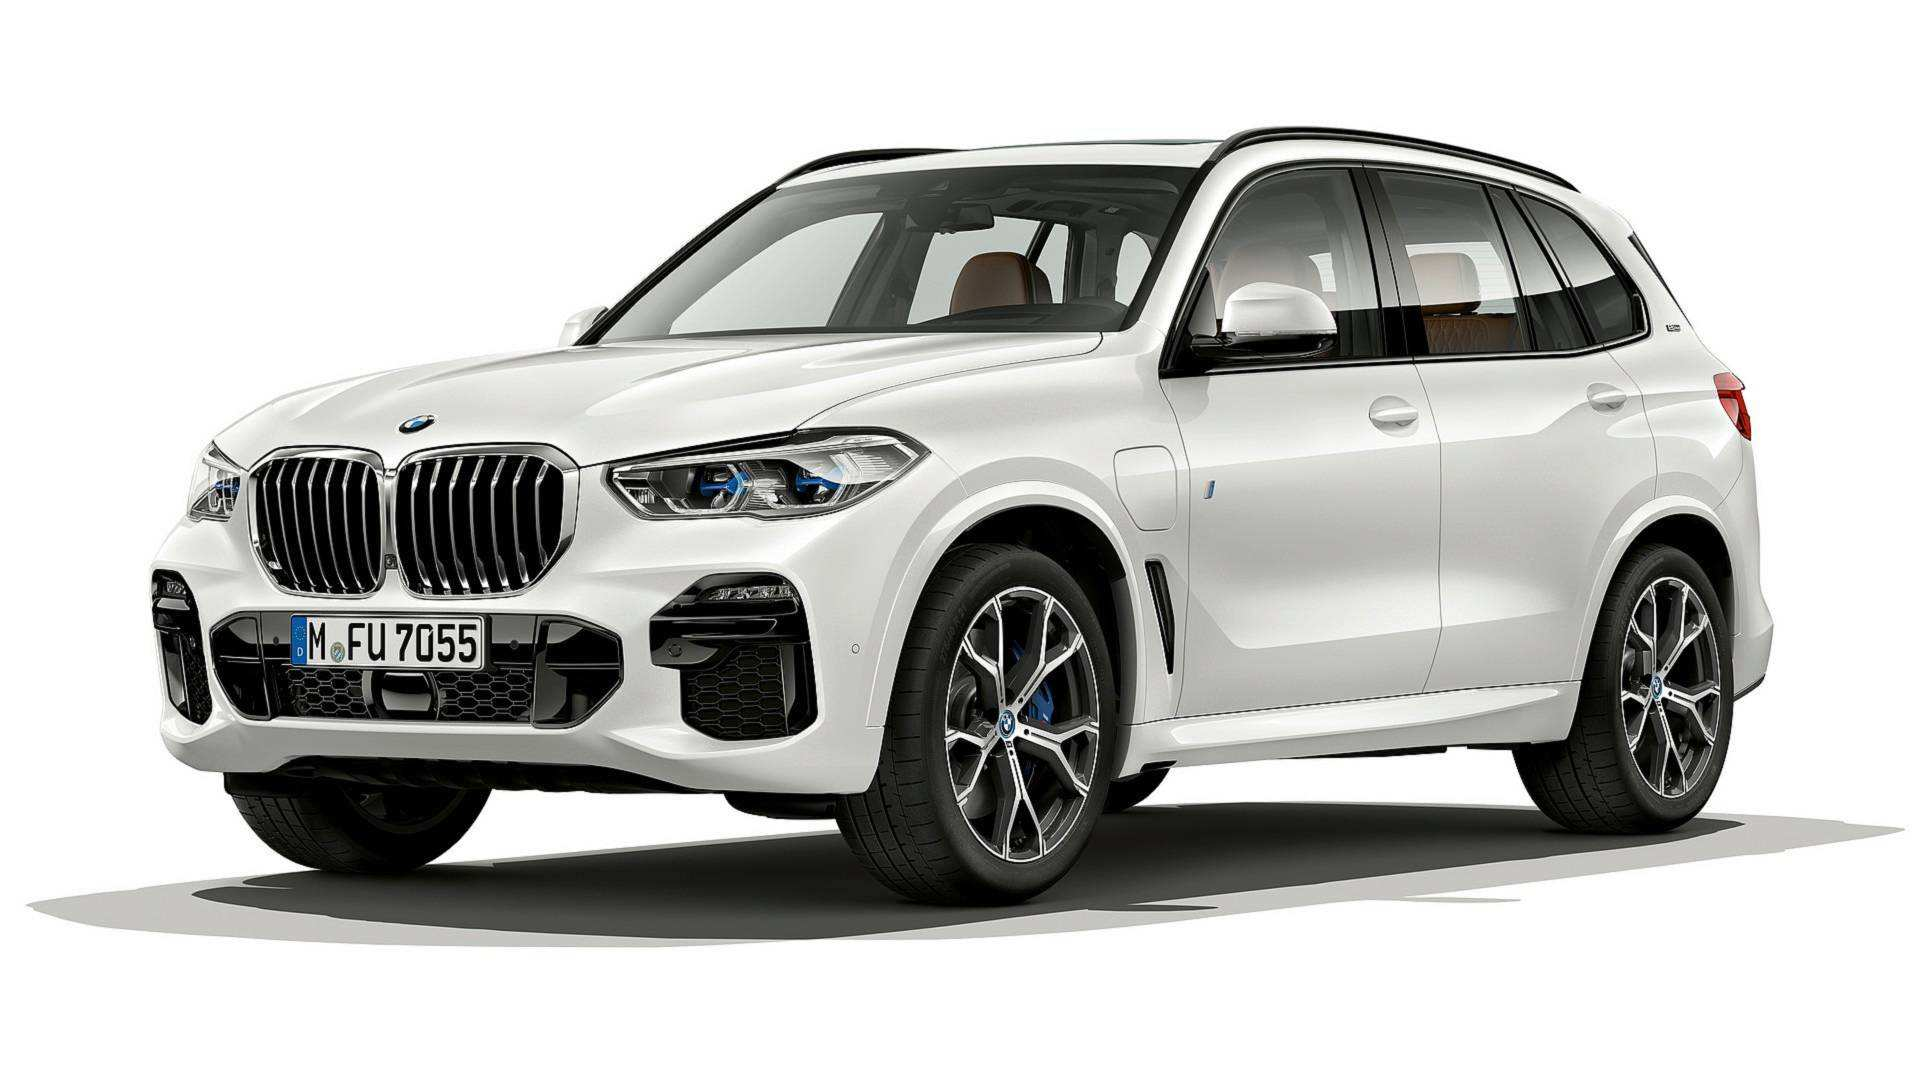 40 Great 2019 Bmw X5 Diesel Rumors for 2019 Bmw X5 Diesel